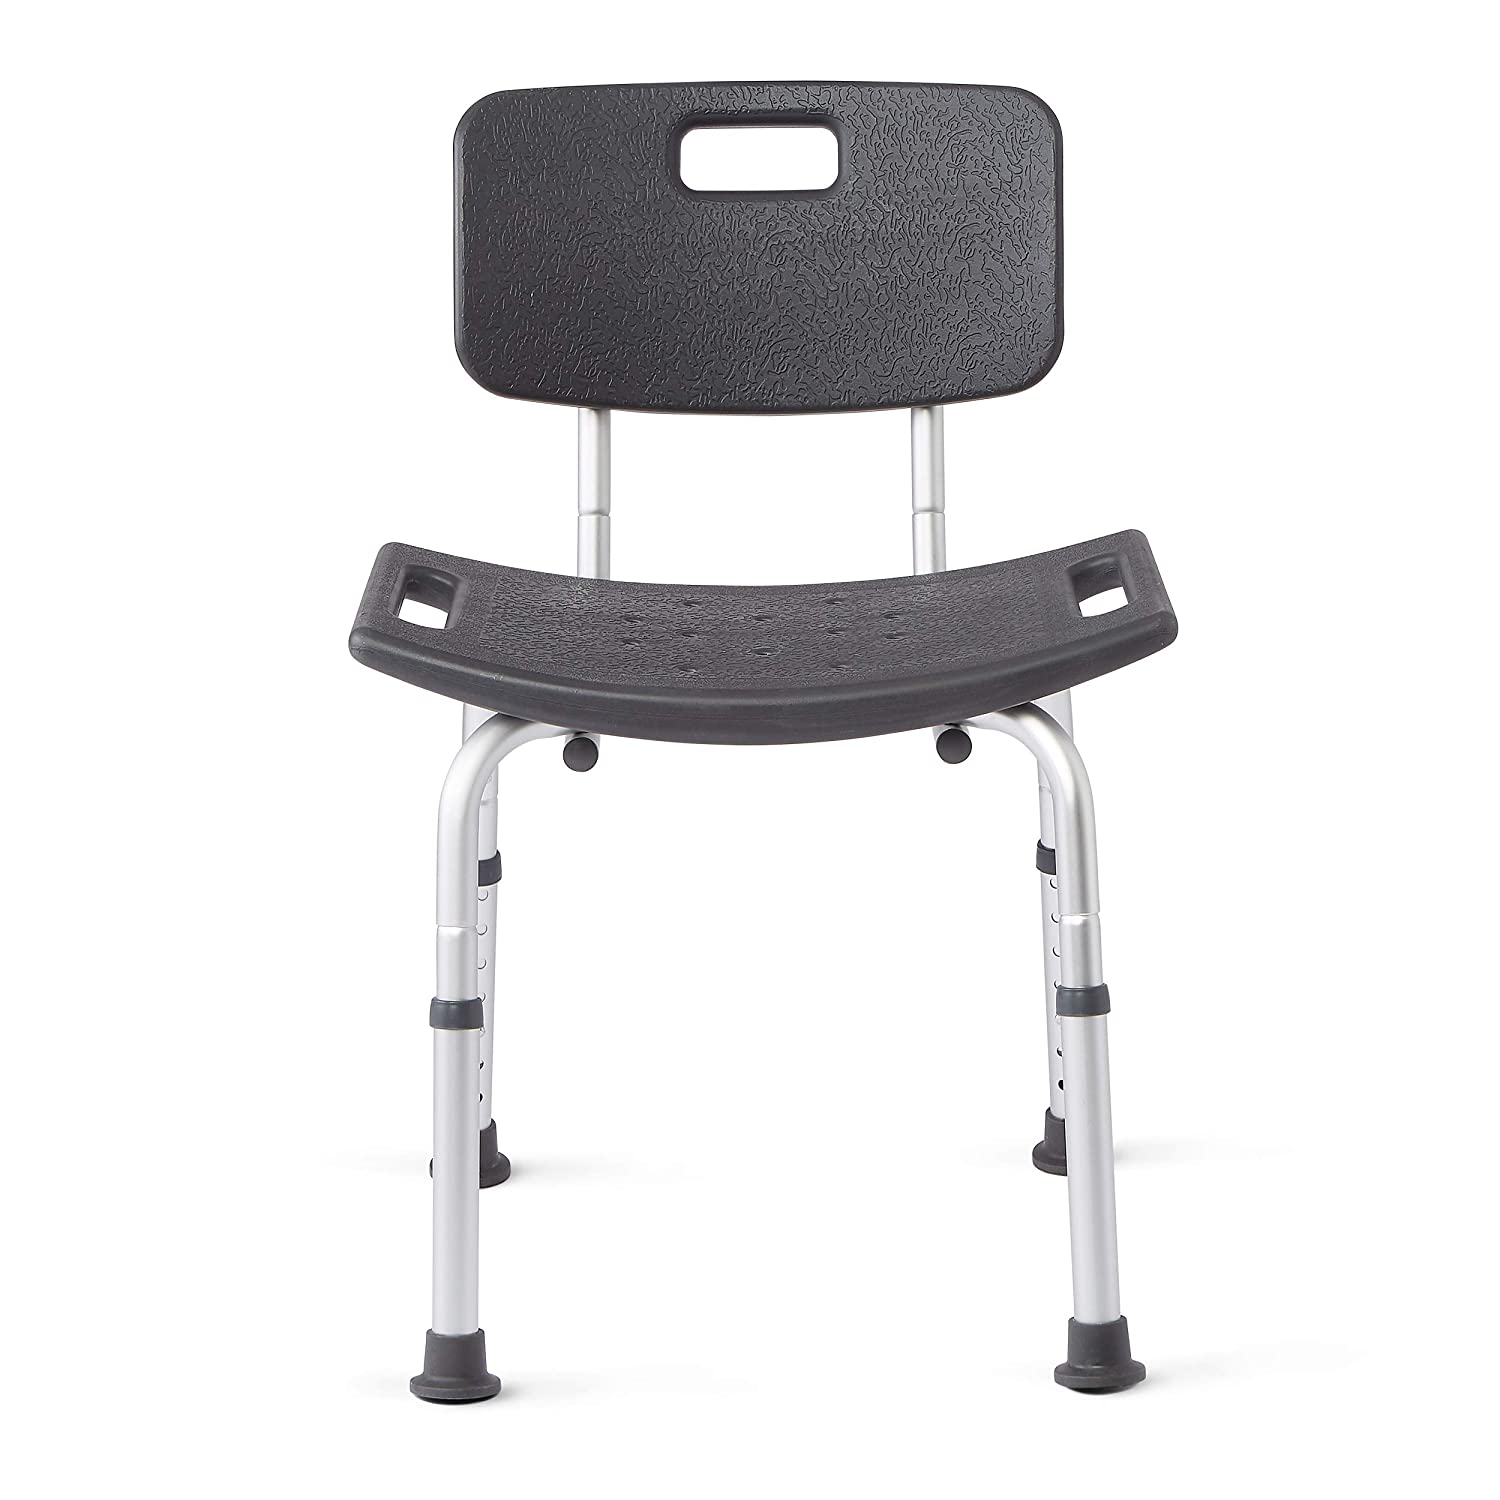 Medline Shower Chair Bath Bench With Back, Supportsup To 300 Lb, Infused With Microban Antimicrobial Protection, Gray